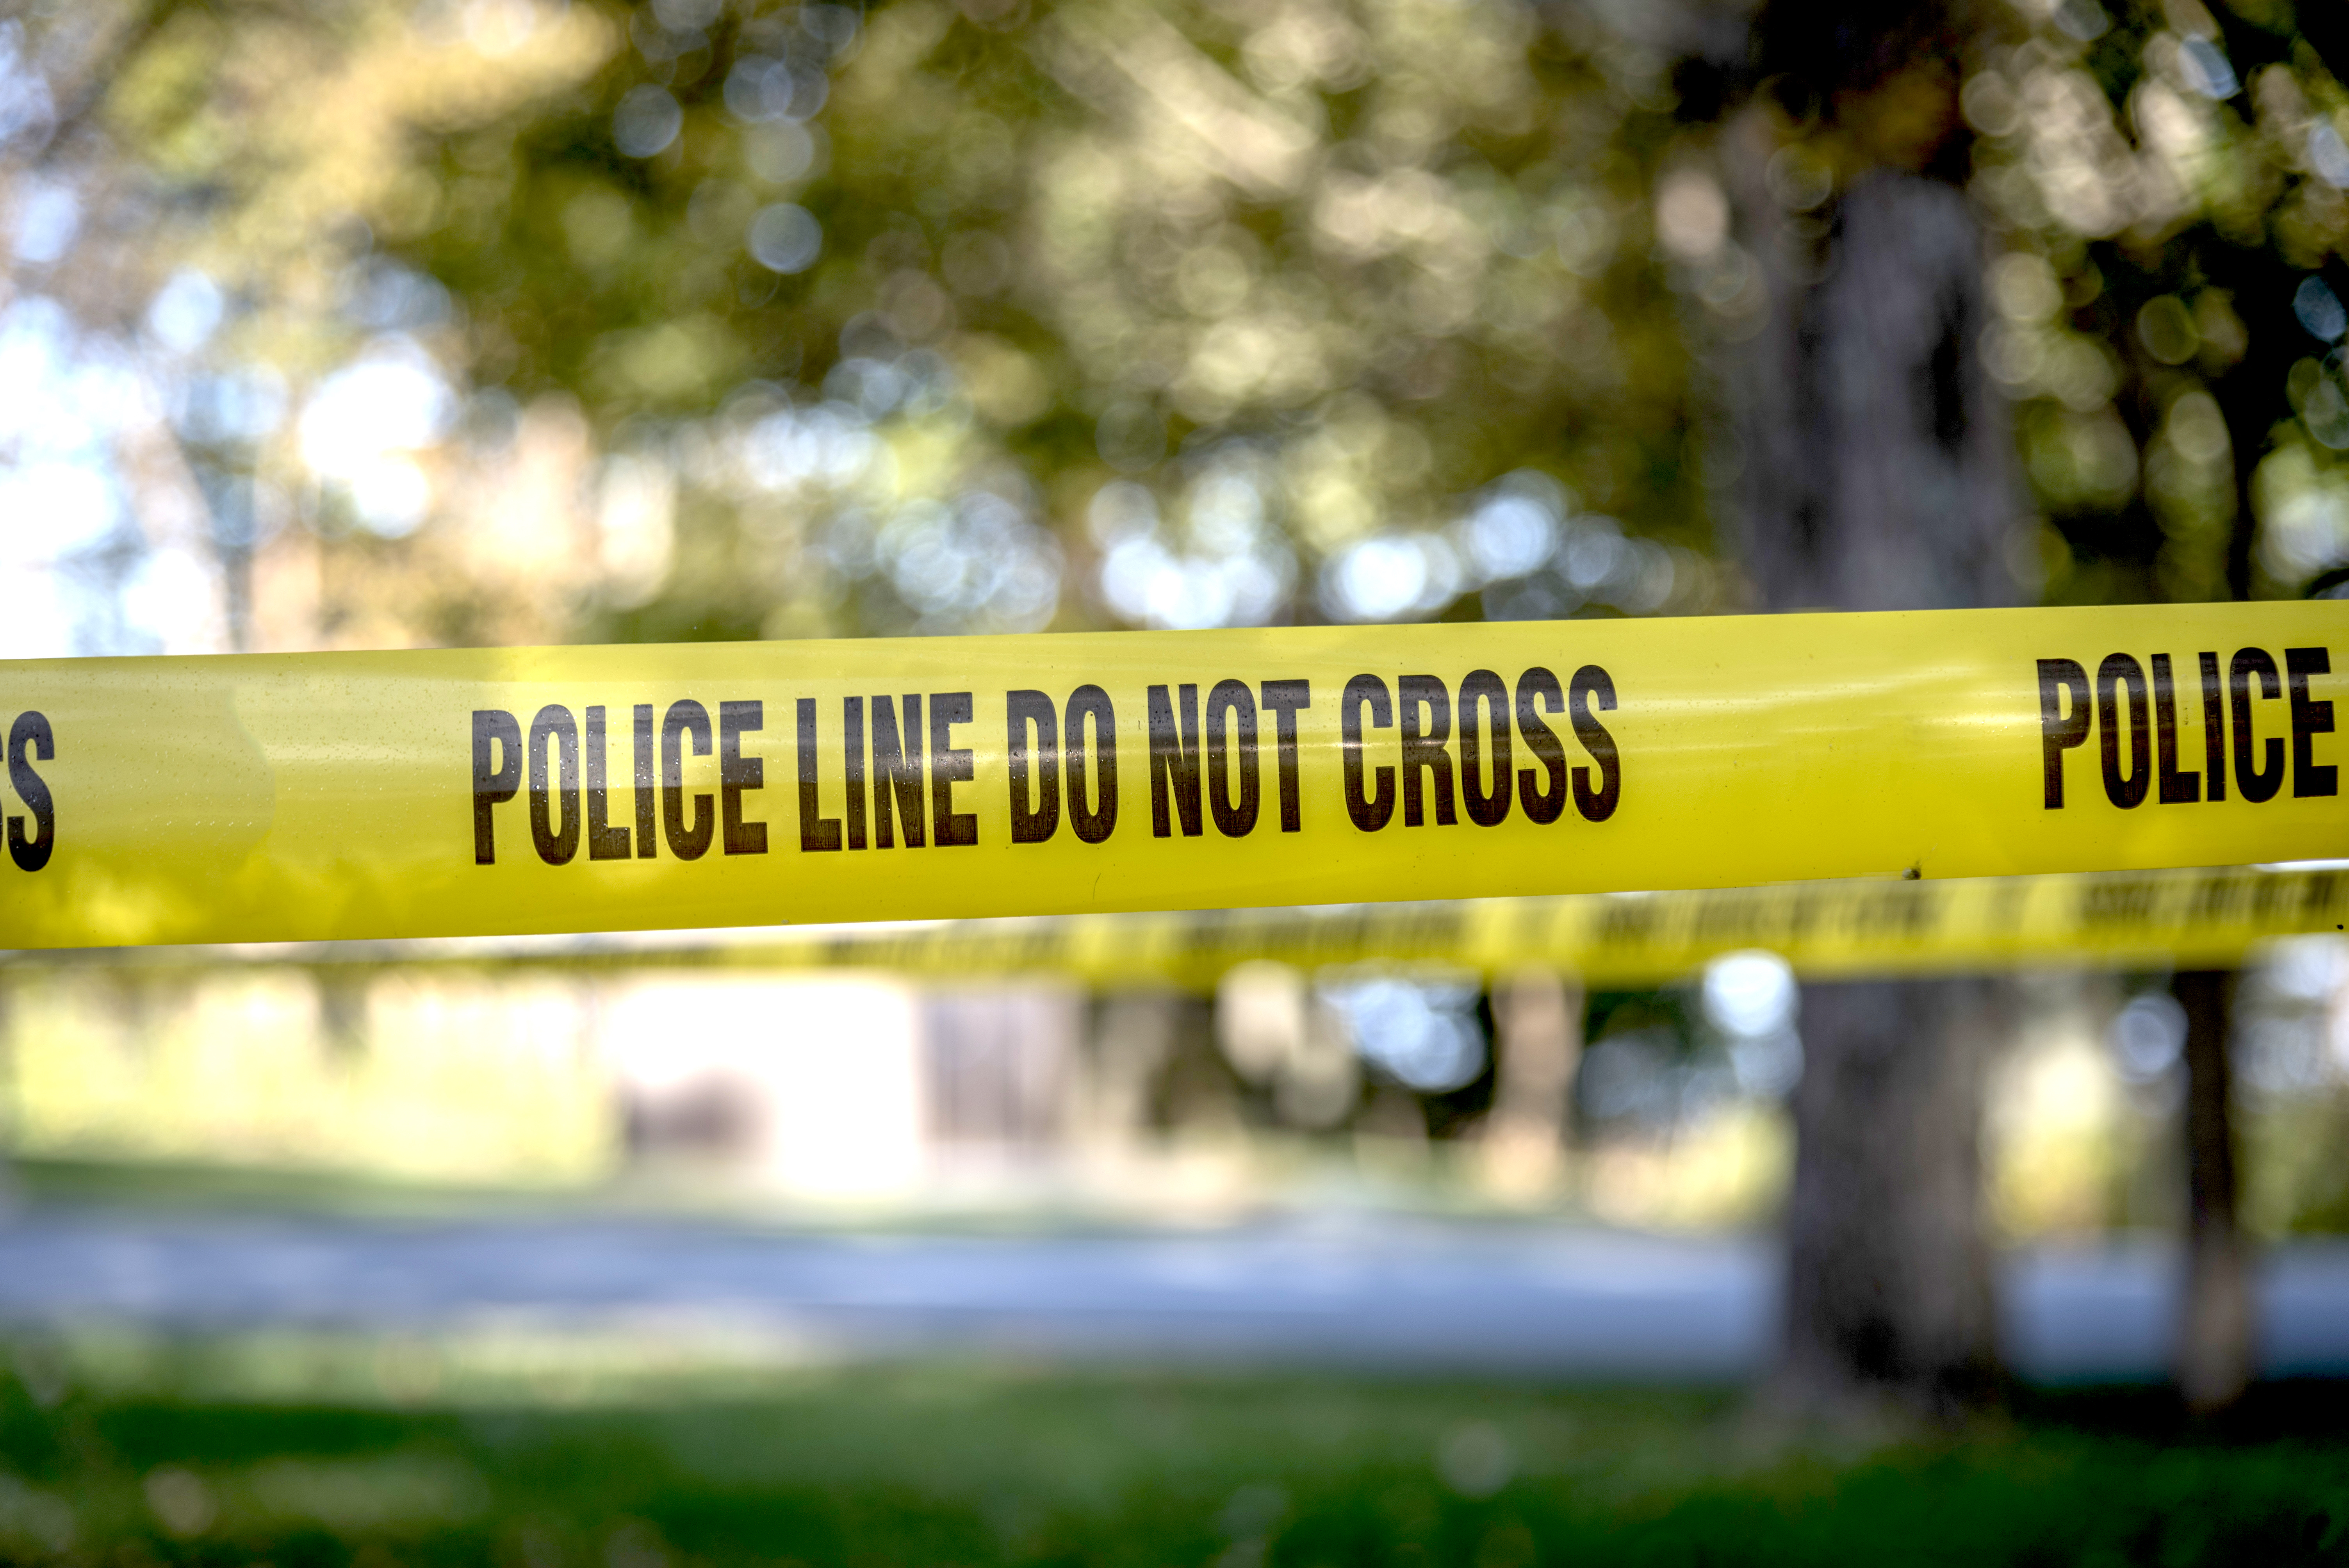 Three shootings were reported in Logan Square Oct. 20, 2021.